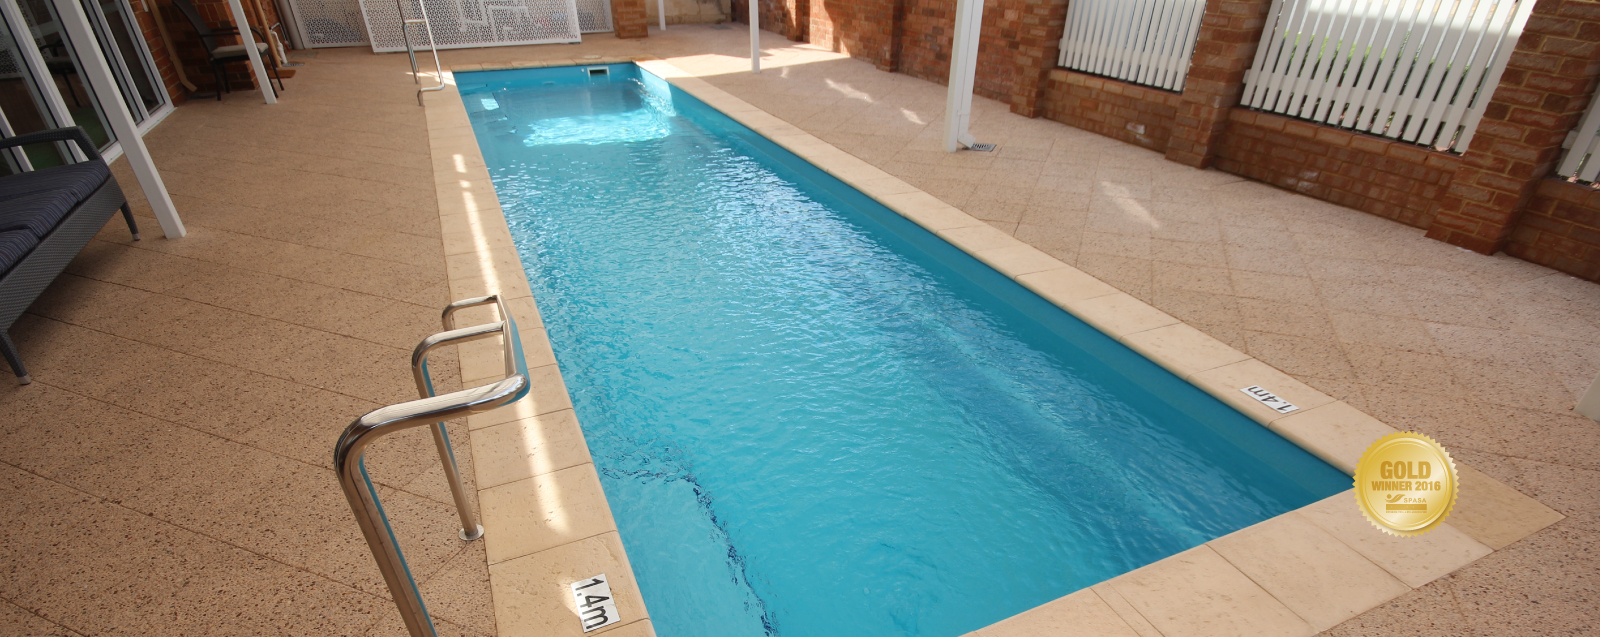 Fibreglass Swimming Pools Perth Aqua Technics